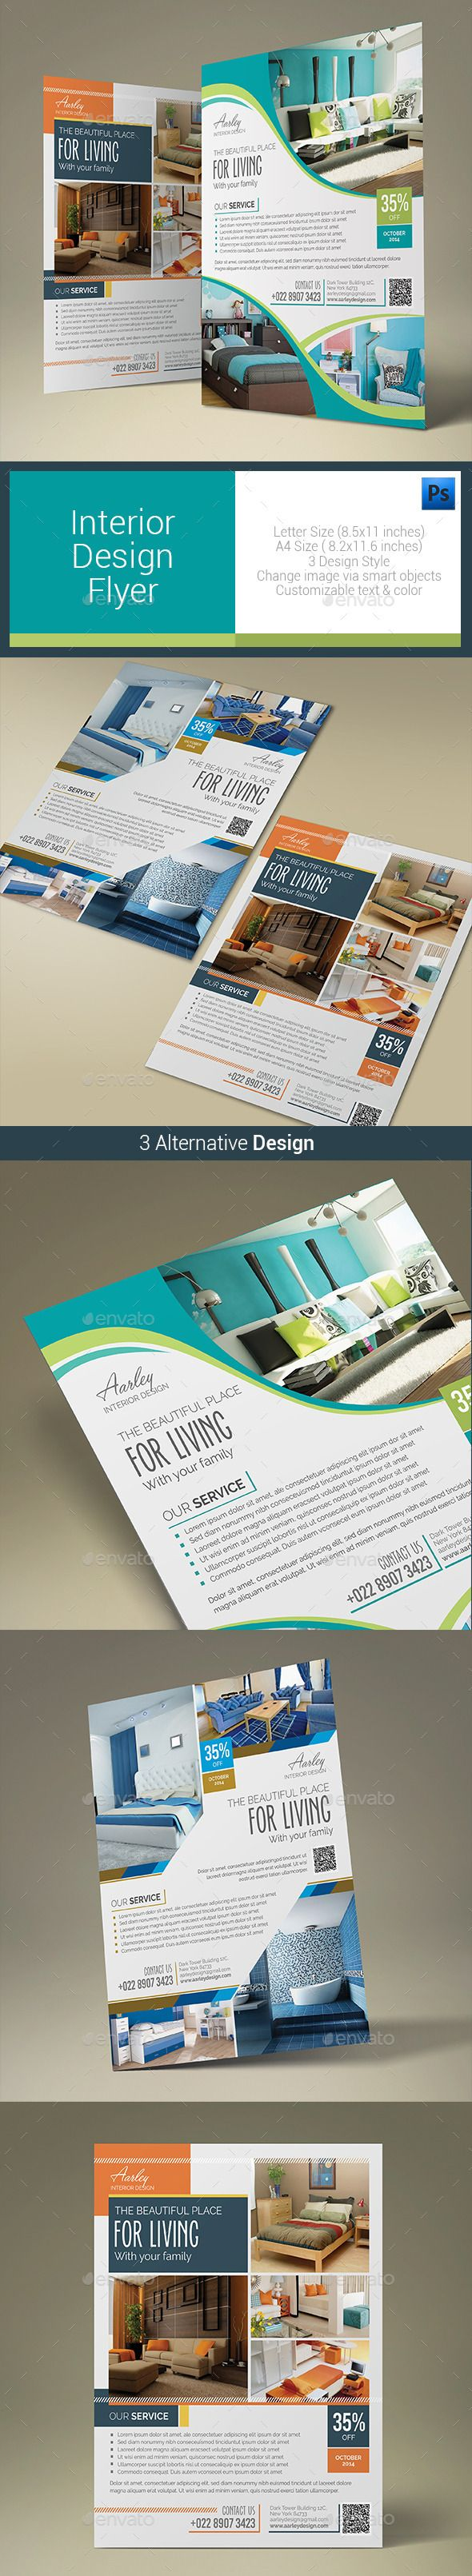 23 Best Brochure Images On Pinterest Editorial Design Page Layout